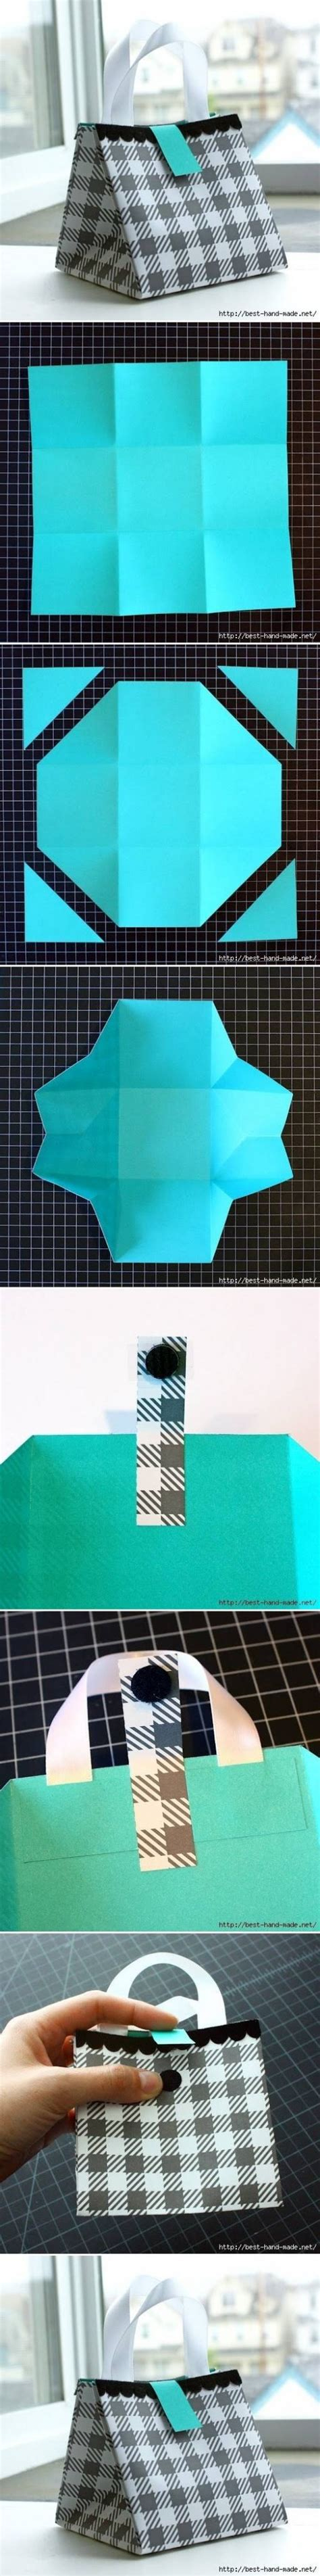 how to make paper gift bag step by step diy tutorial how to